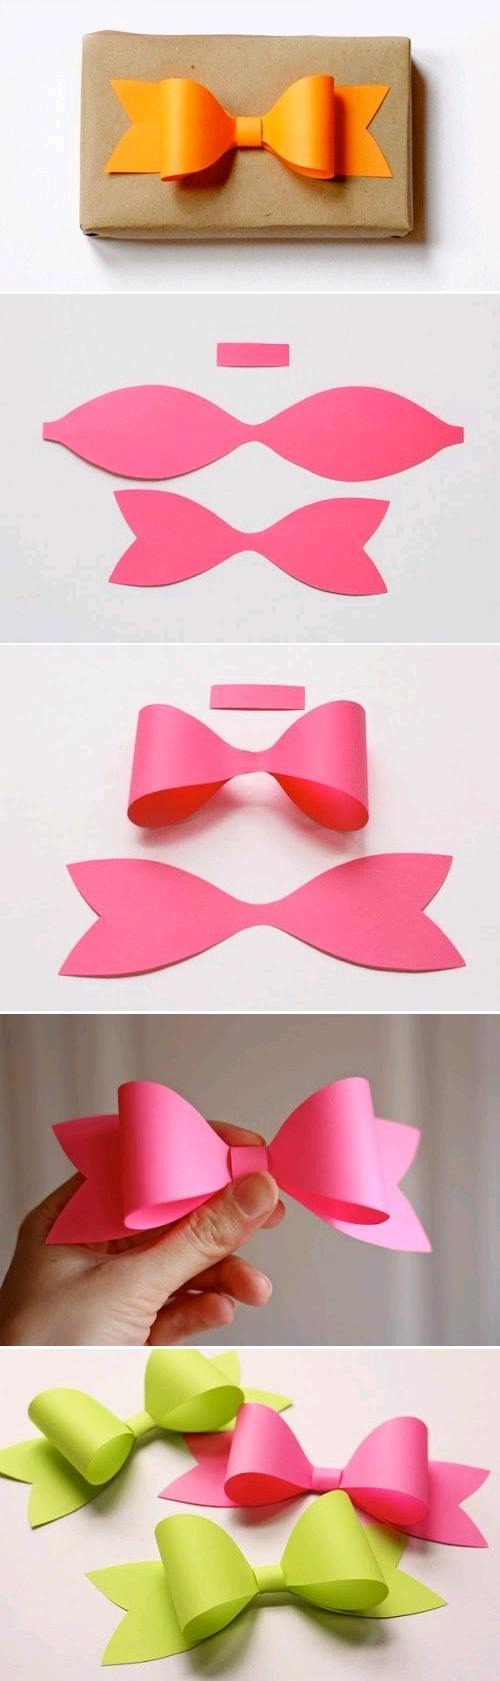 Cute bow to put on Christmas presents this year ;)